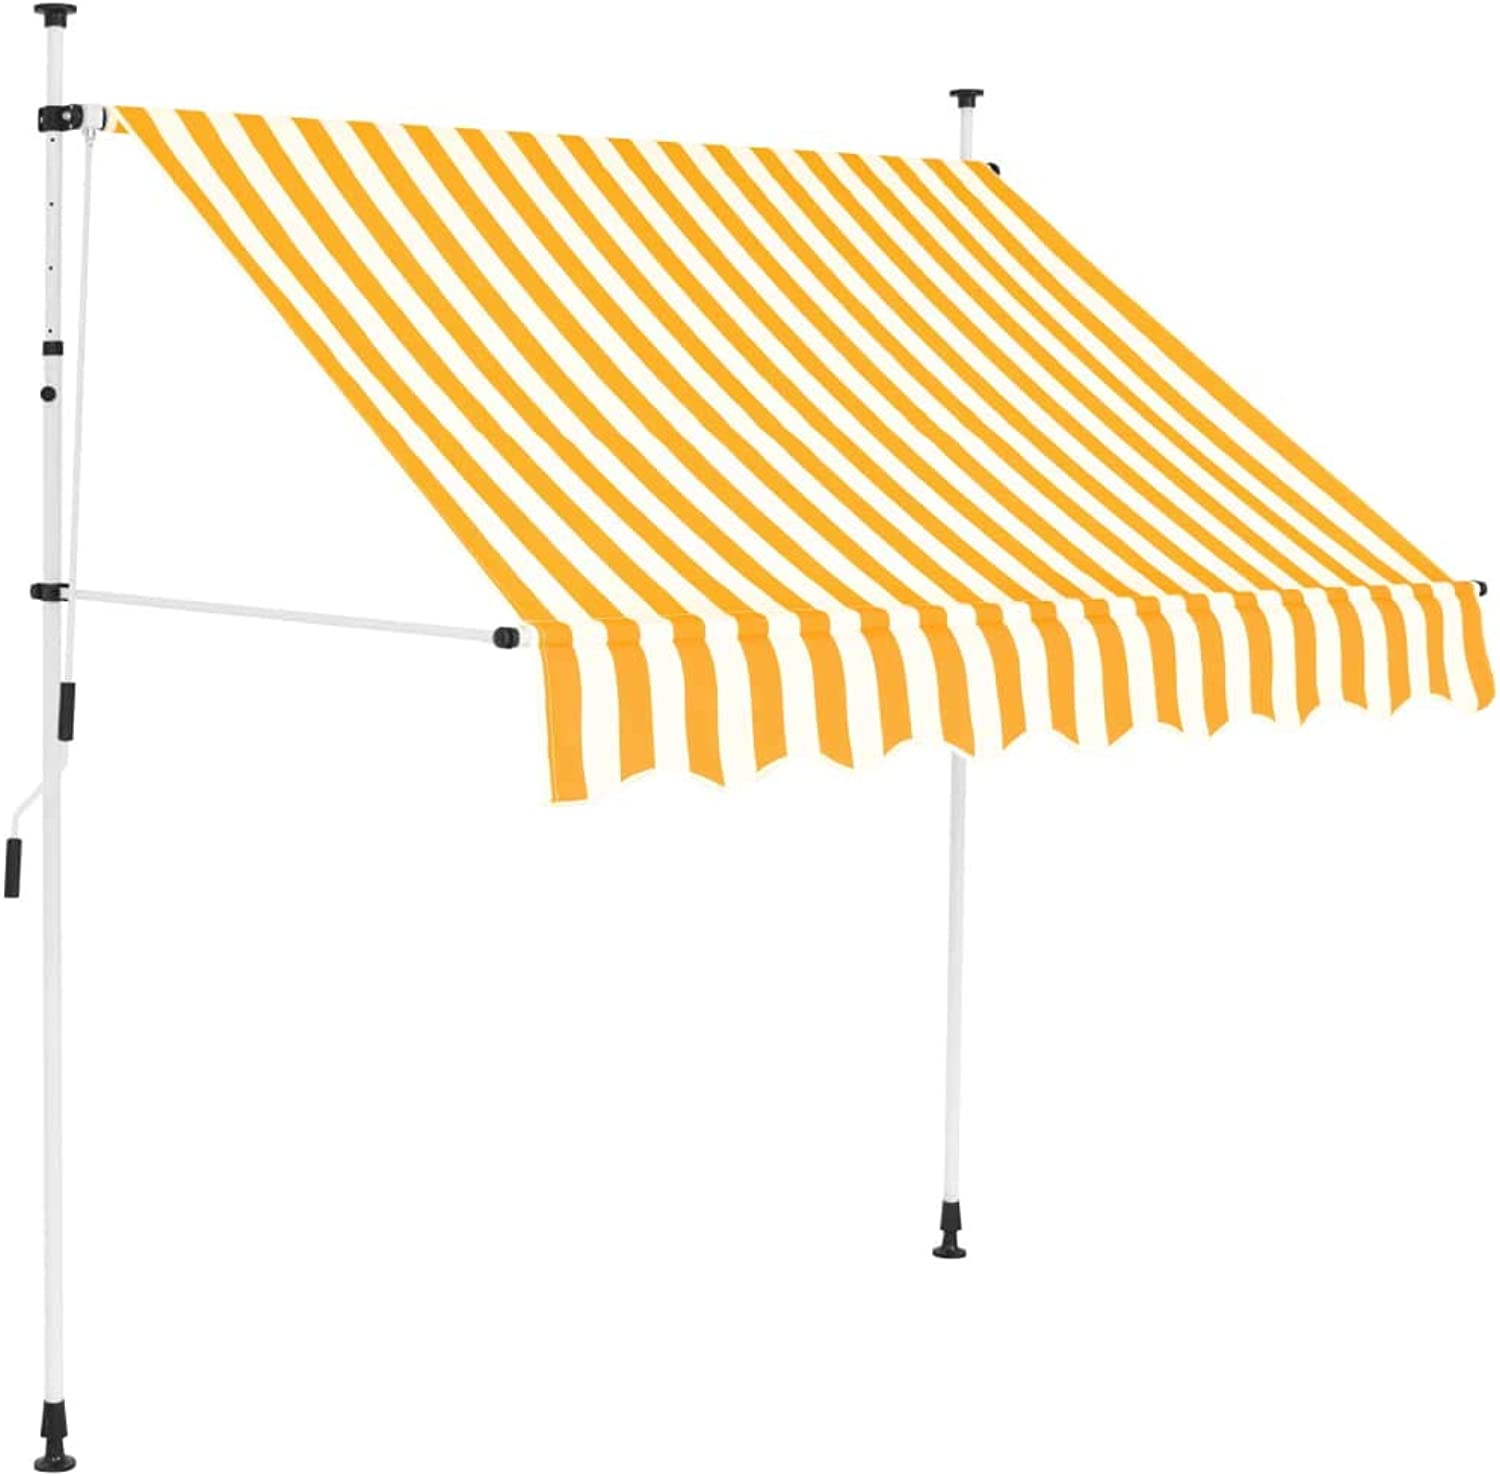 VidaXL Manual Retractable Awning 150cm Yellow and White Stripes Shade Canopy